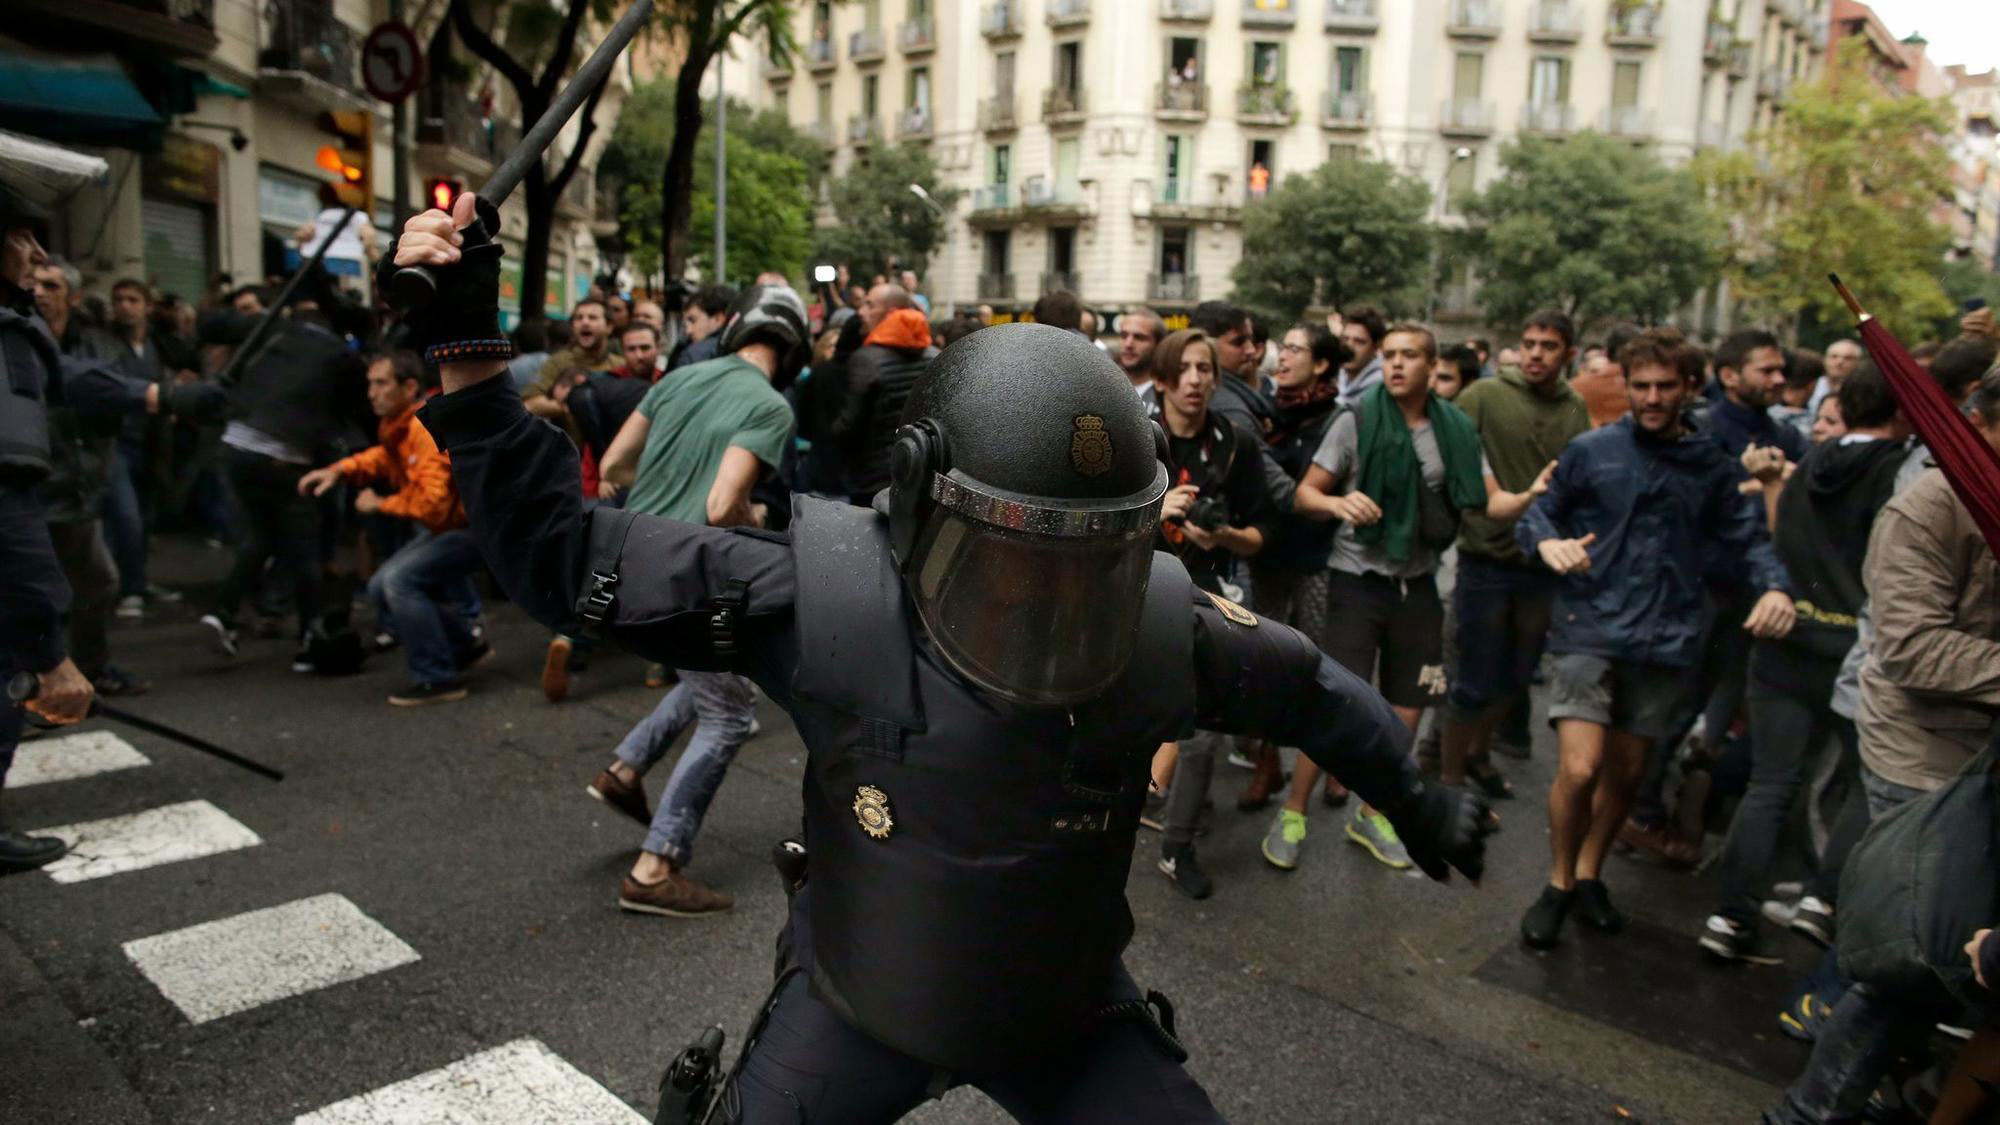 Spanish police attacking people in Catalunya.